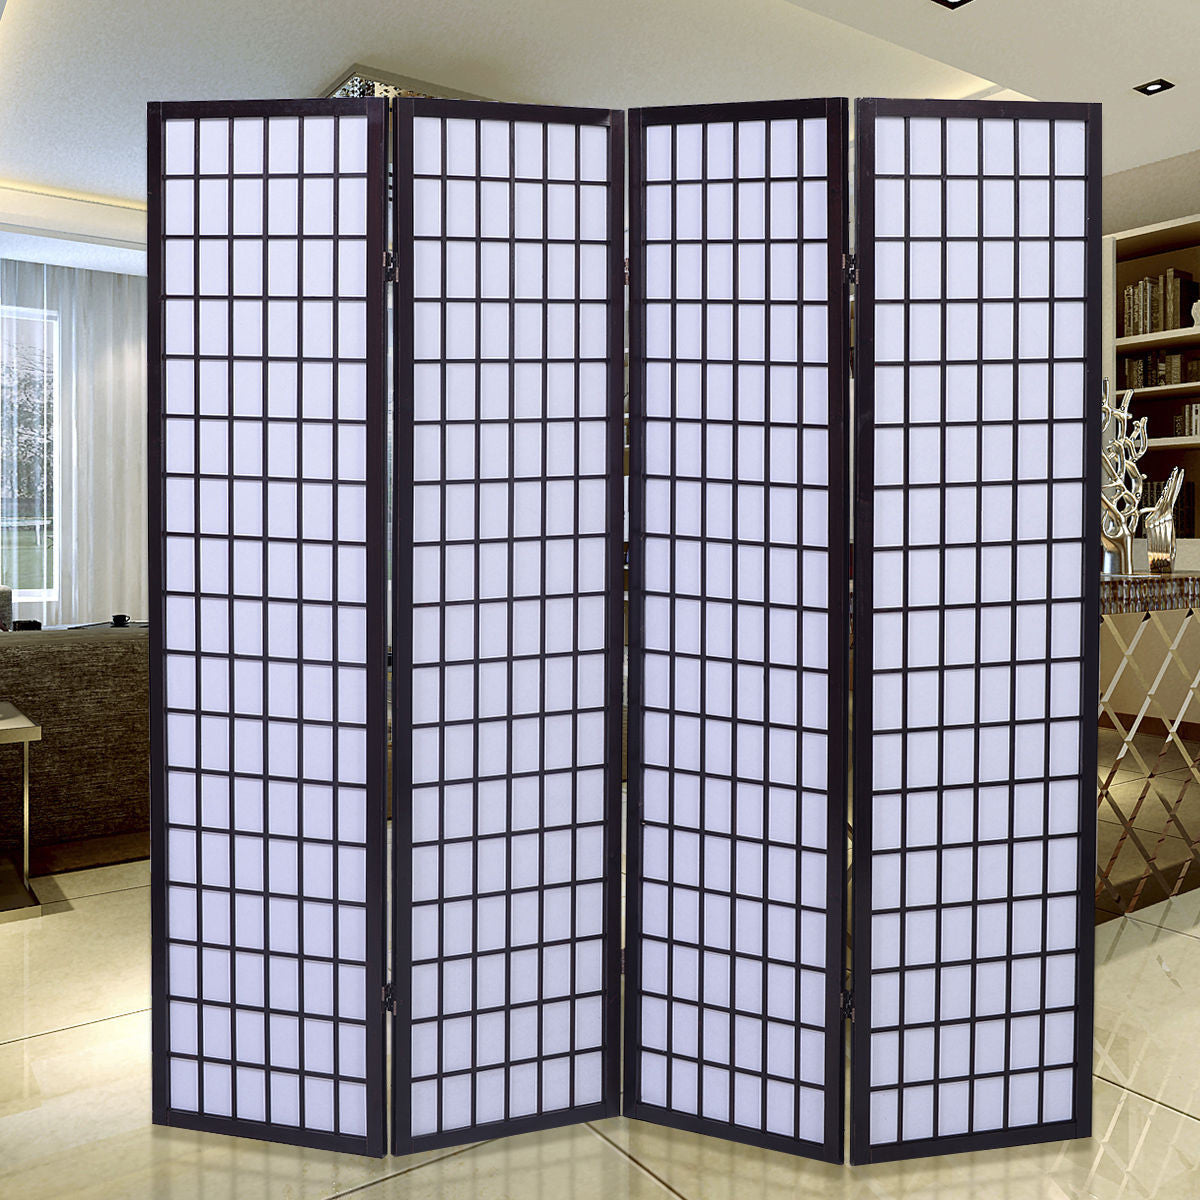 Oriental Shoji Screen - 4 Panel - Black